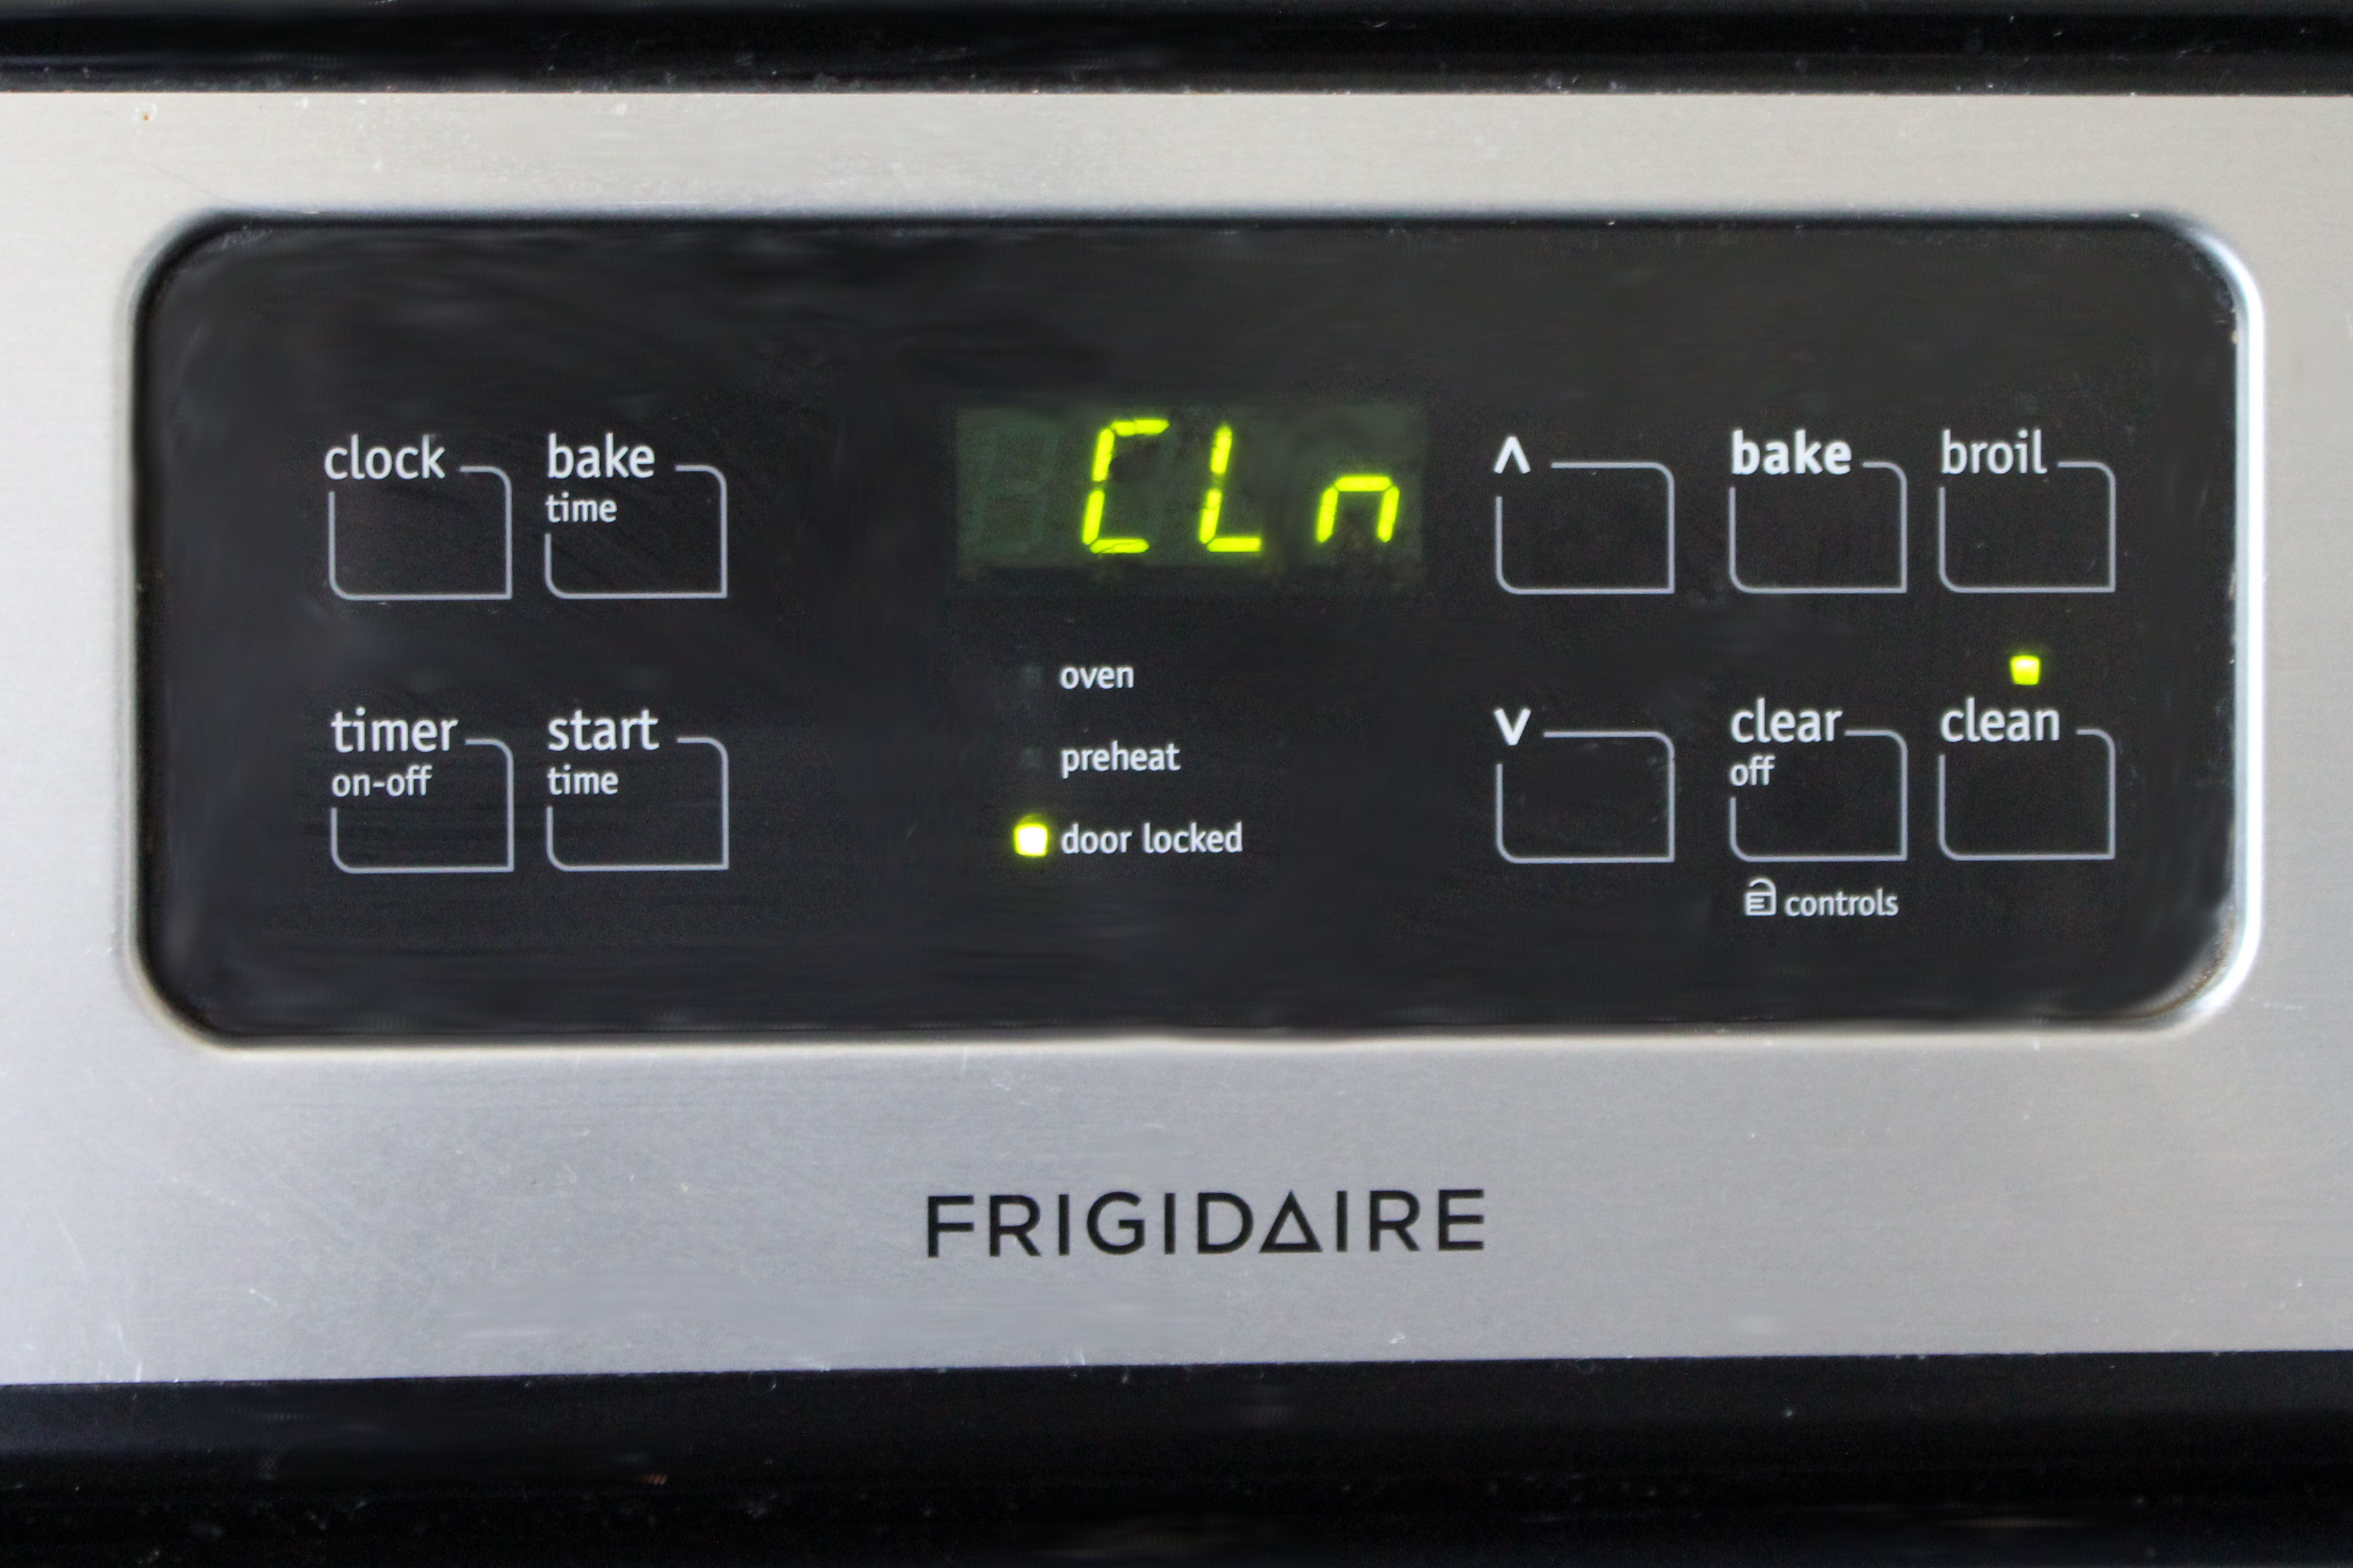 cleaning your oven